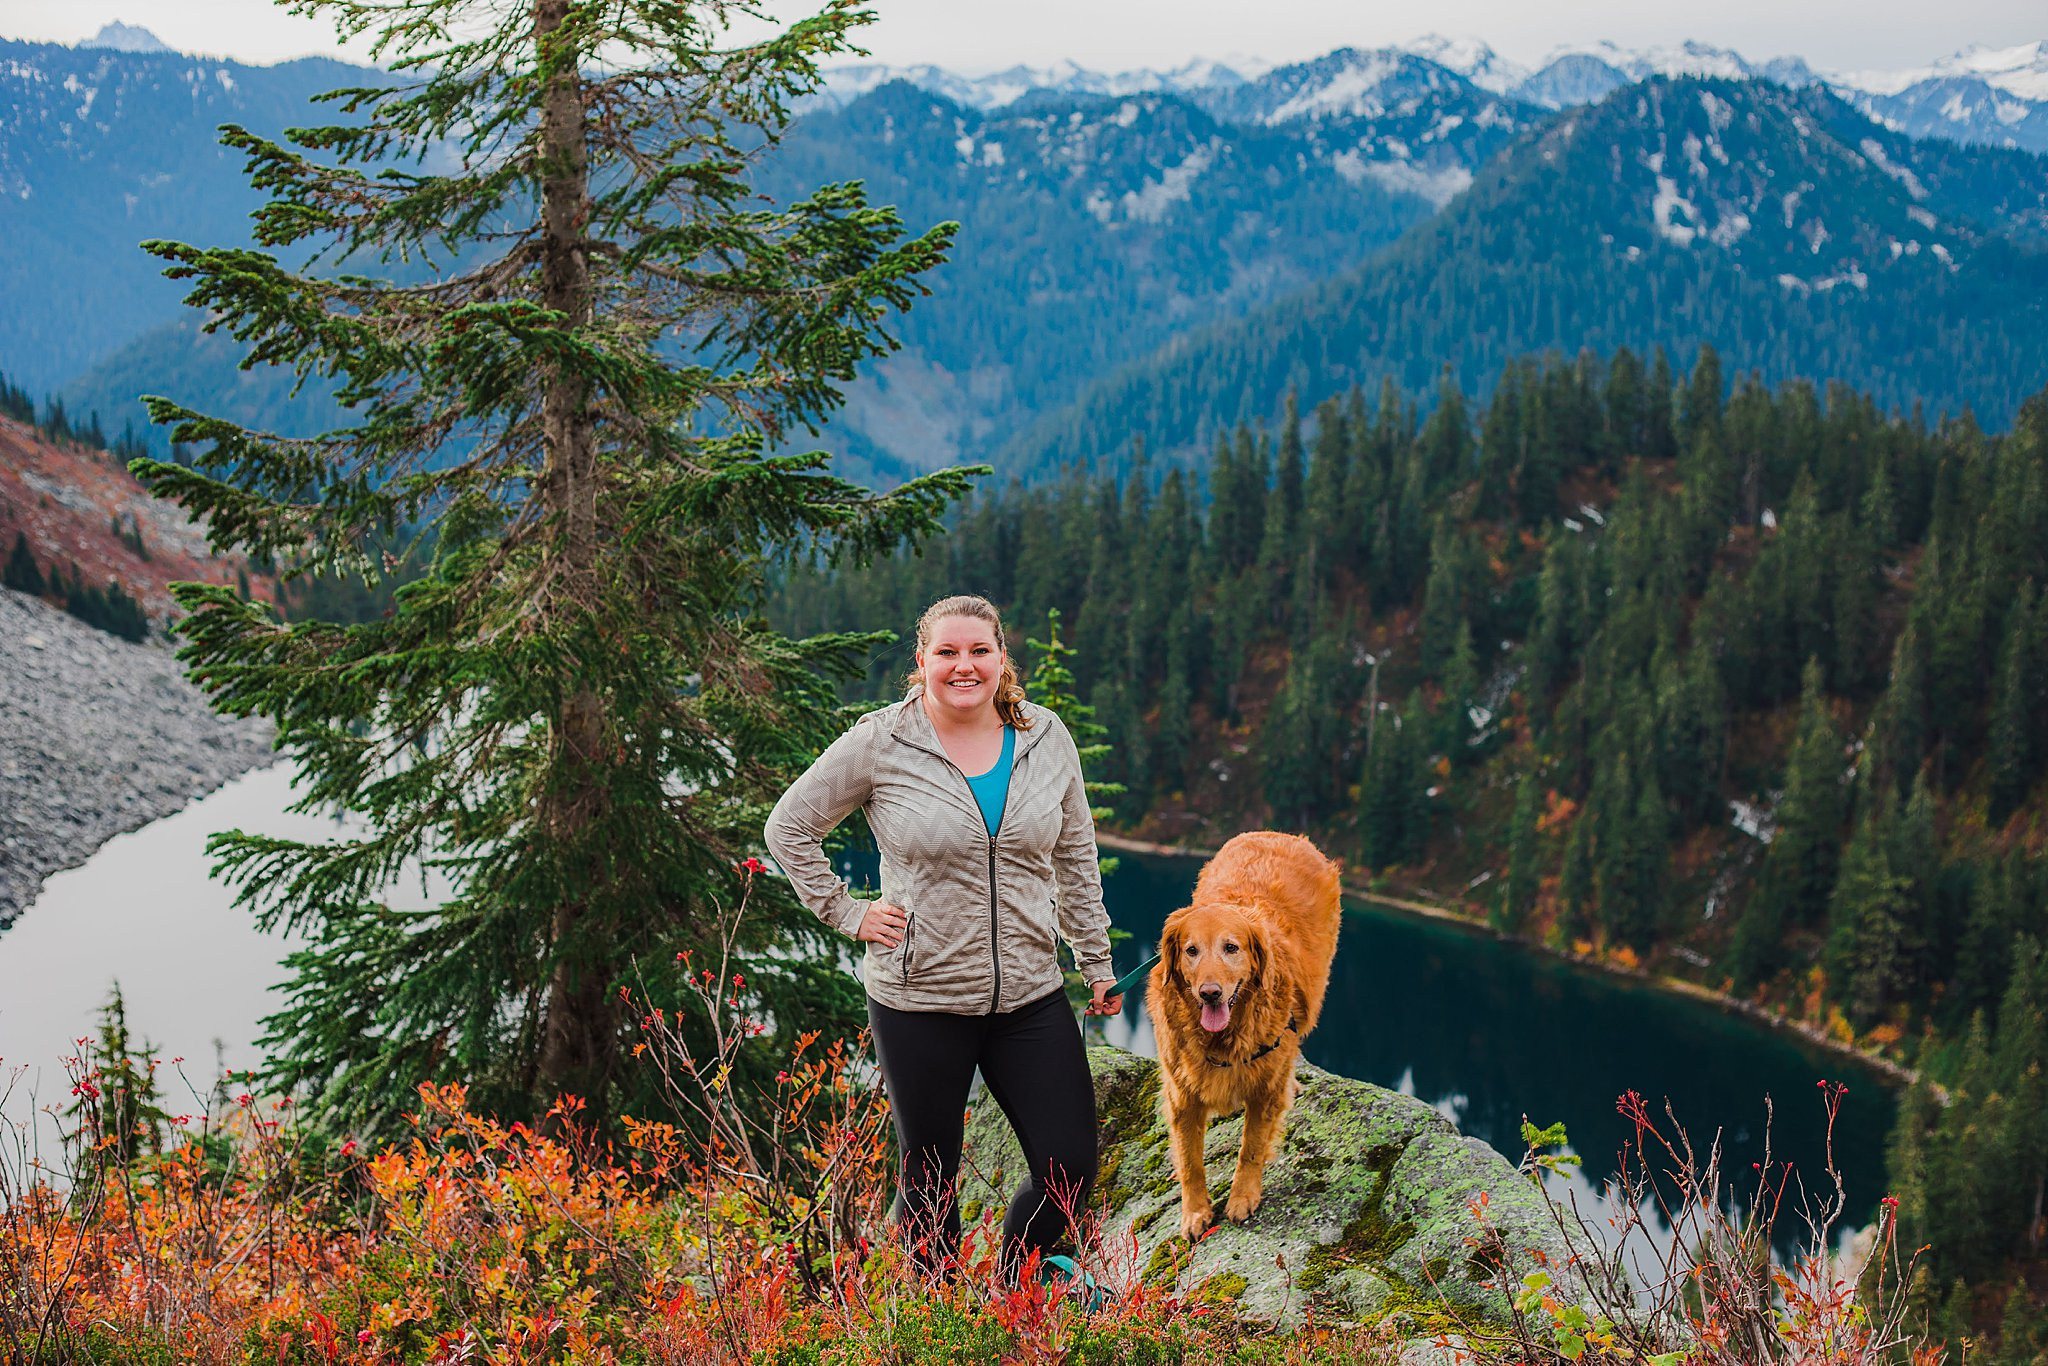 Lake Valhalla, Mount McCausland, dog friendly hike, 52 hike challenge, washington, fall hikes, autumn, fall, colors, highway 2, central cascades